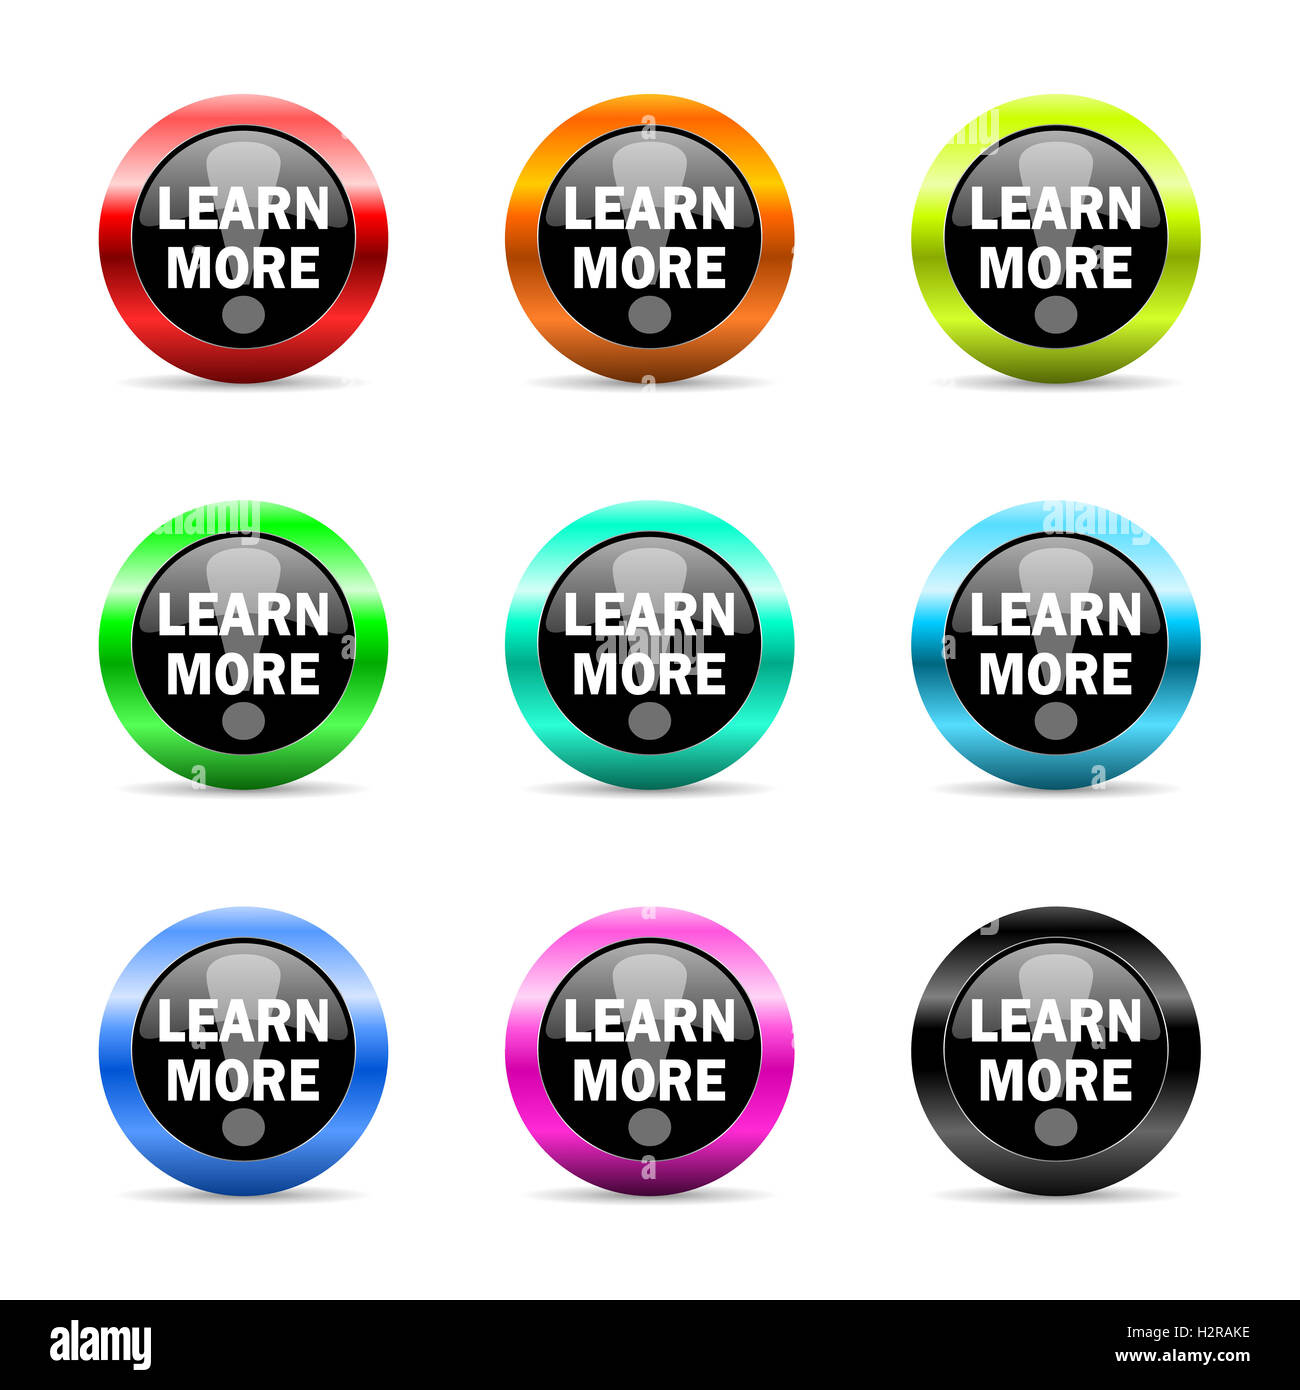 learn more web icons set - Stock Image